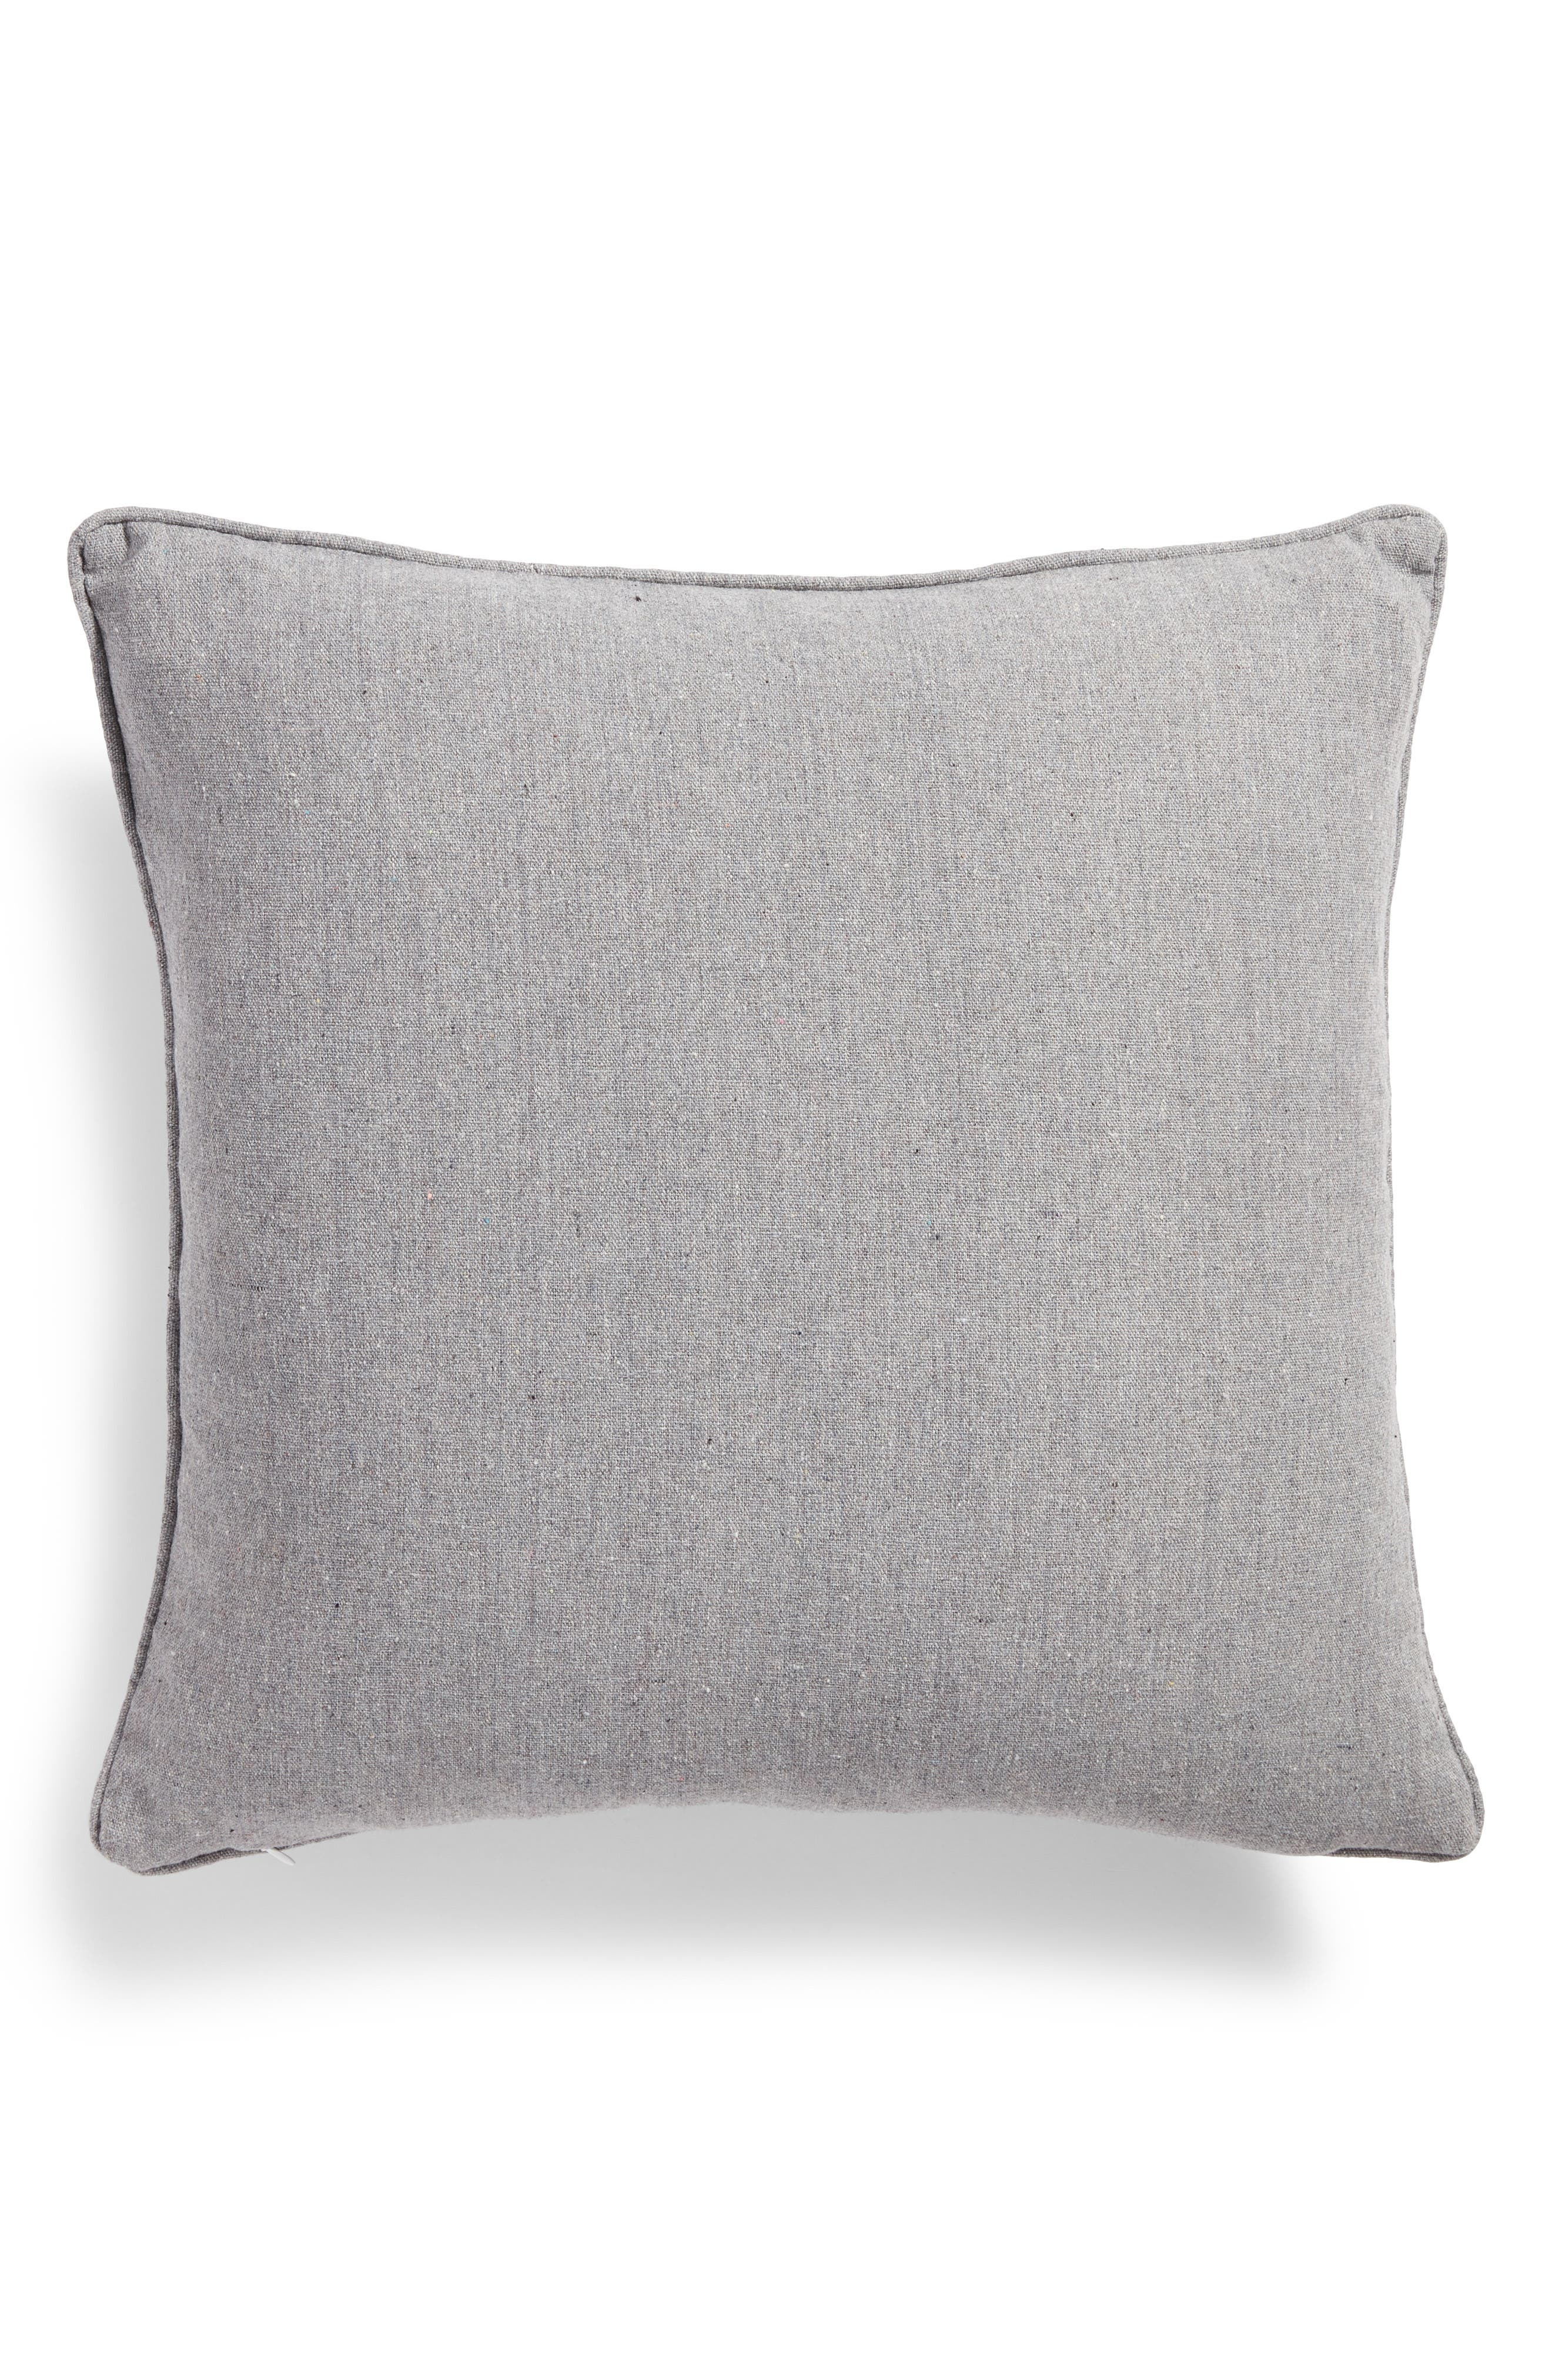 Big Dill Accent Pillow,                             Alternate thumbnail 2, color,                             Grey